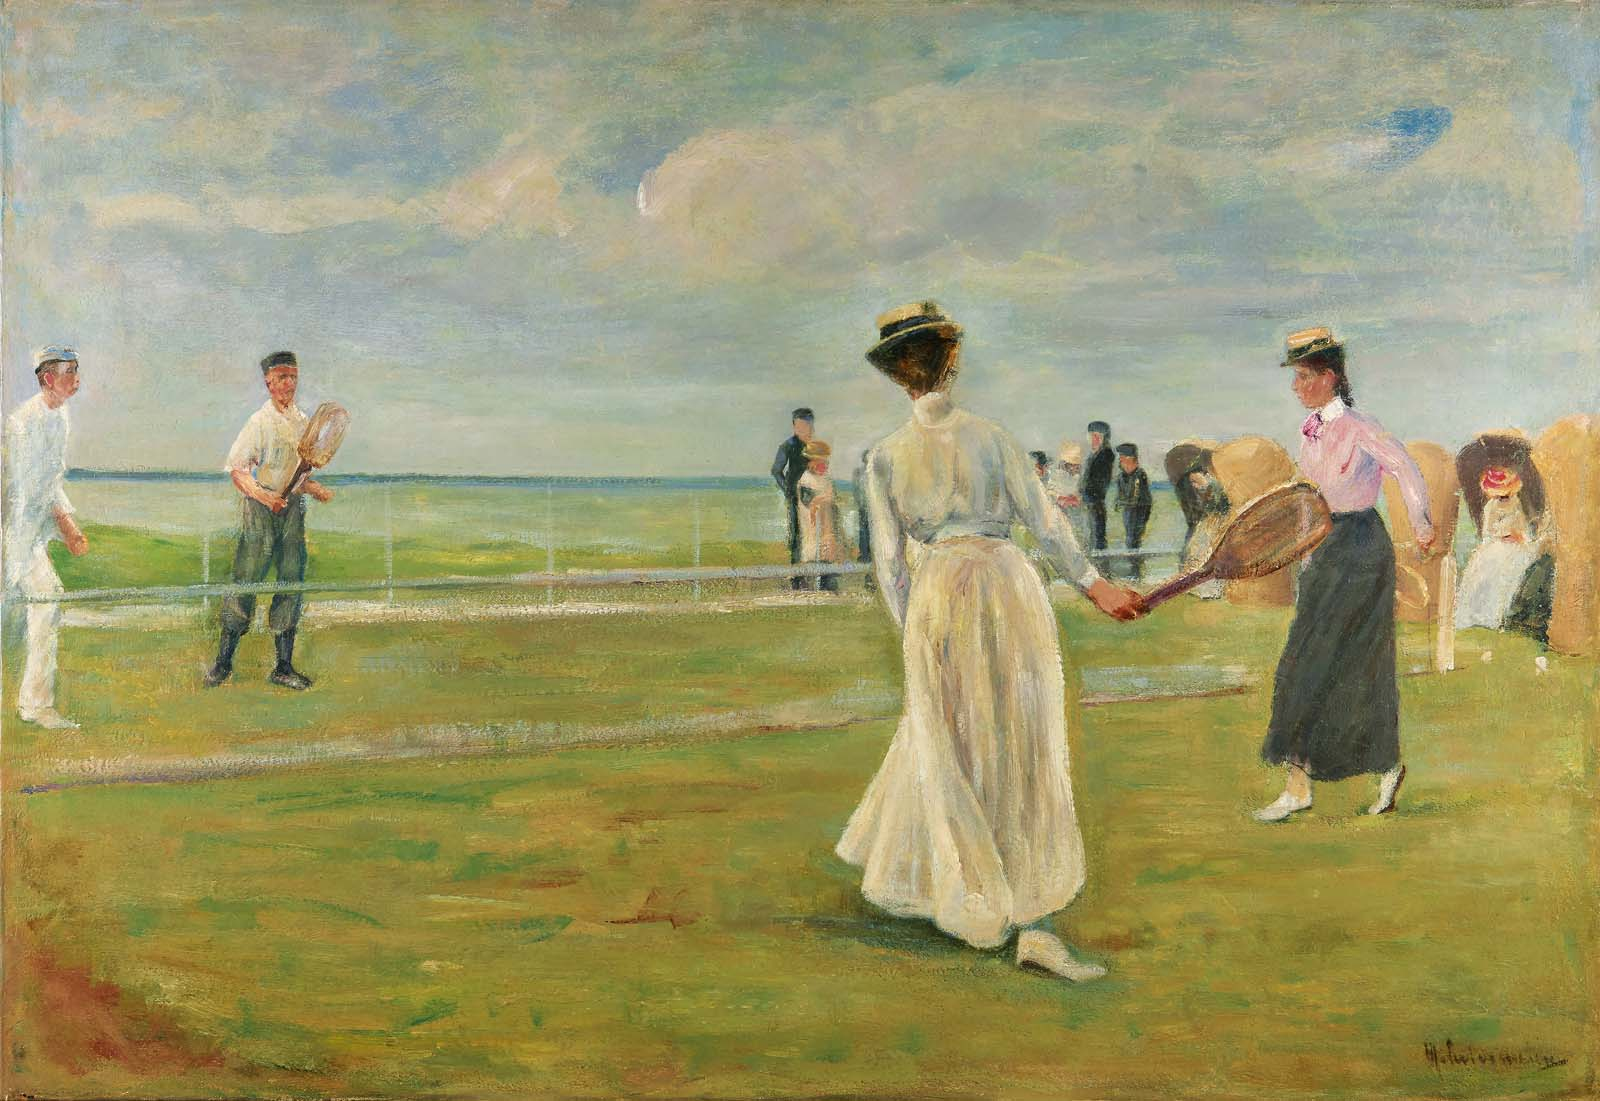 Impressionist Paintings by Max-Liebermann